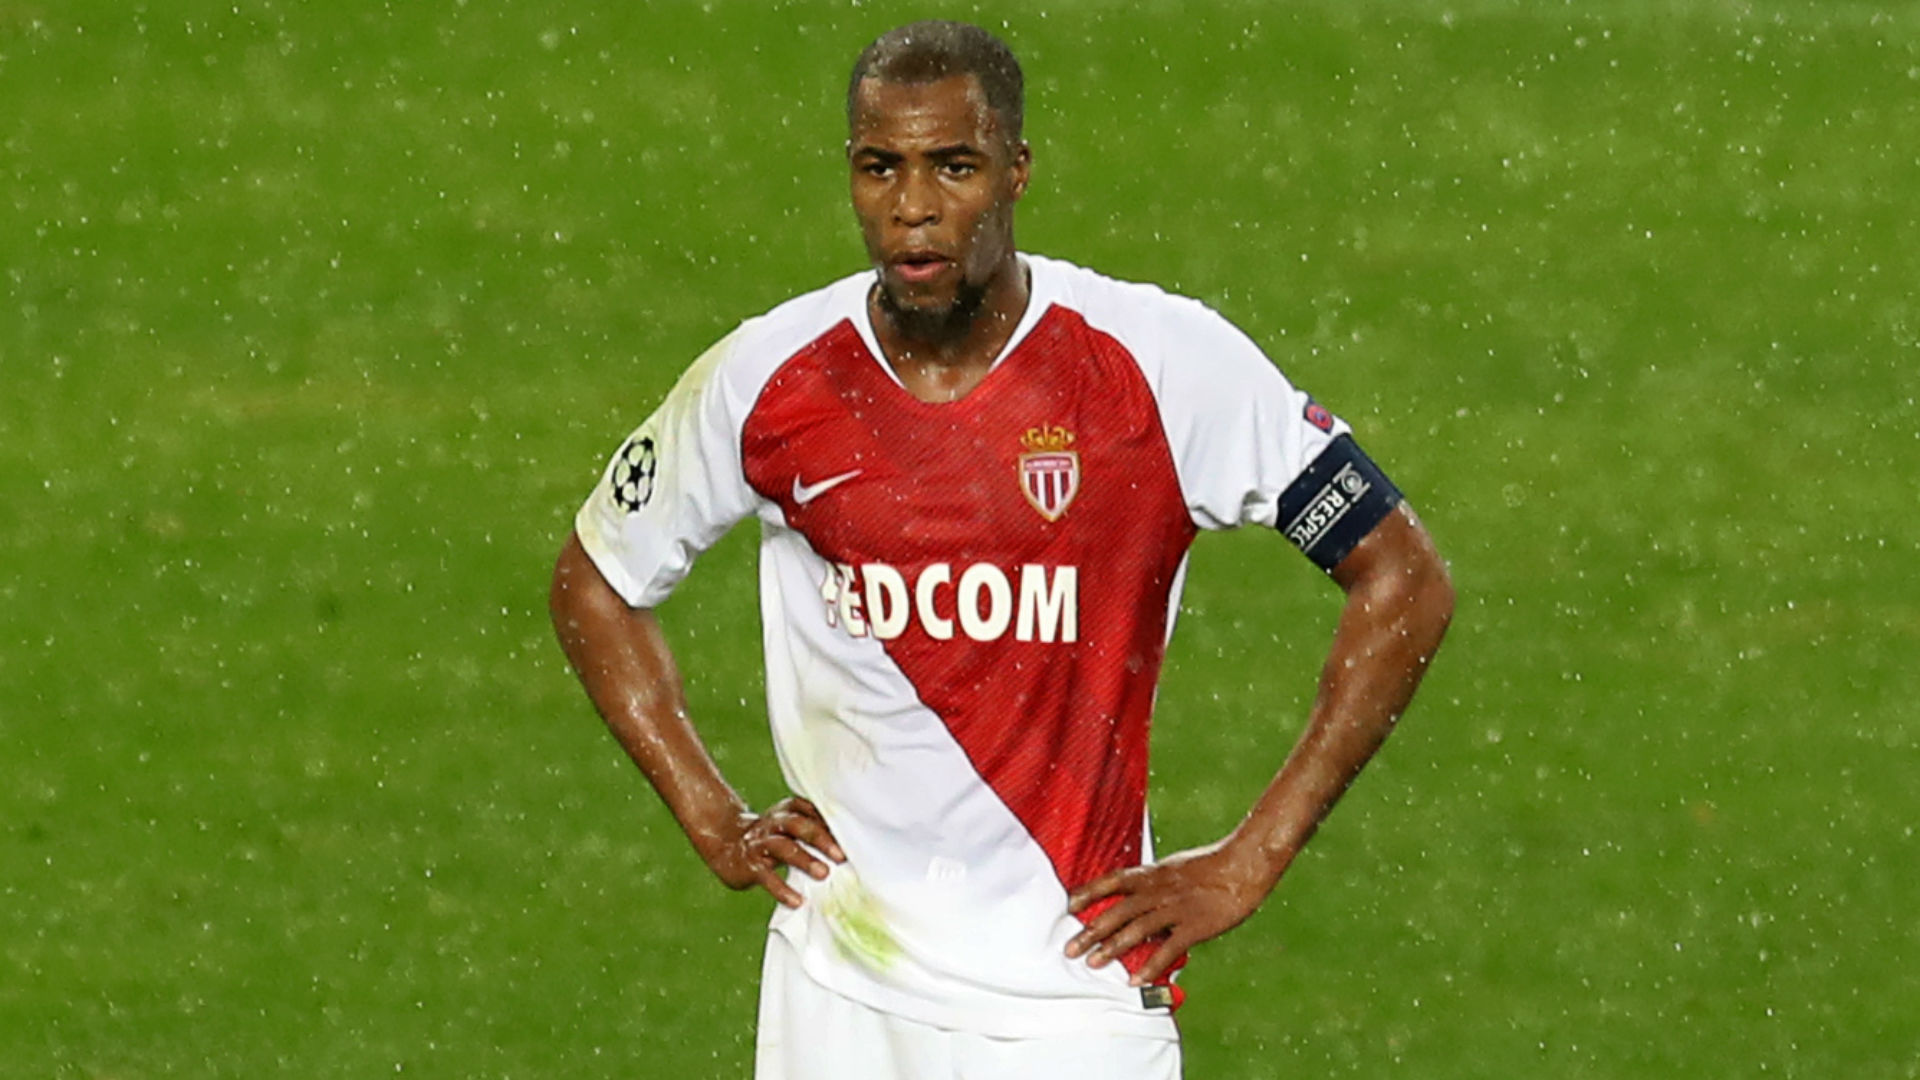 Monaco's Sidibe held Atletico Madrid talks